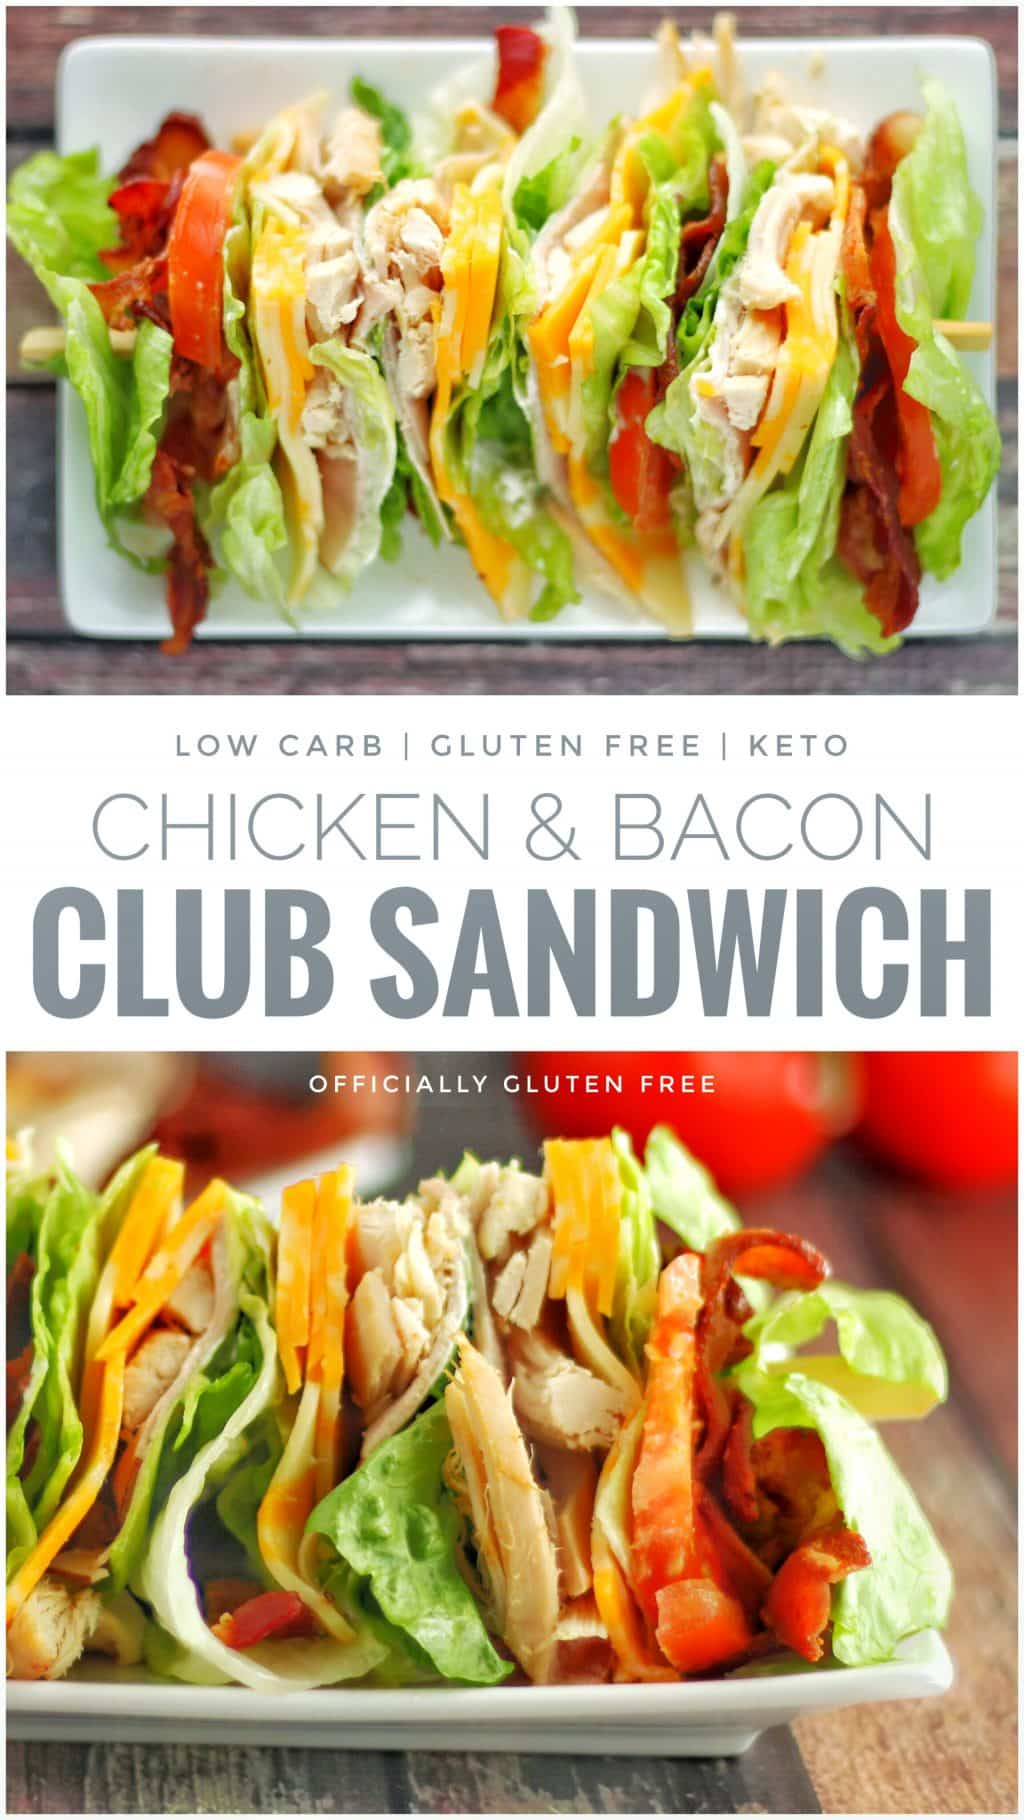 Low Carb Chicken Club Sandwich